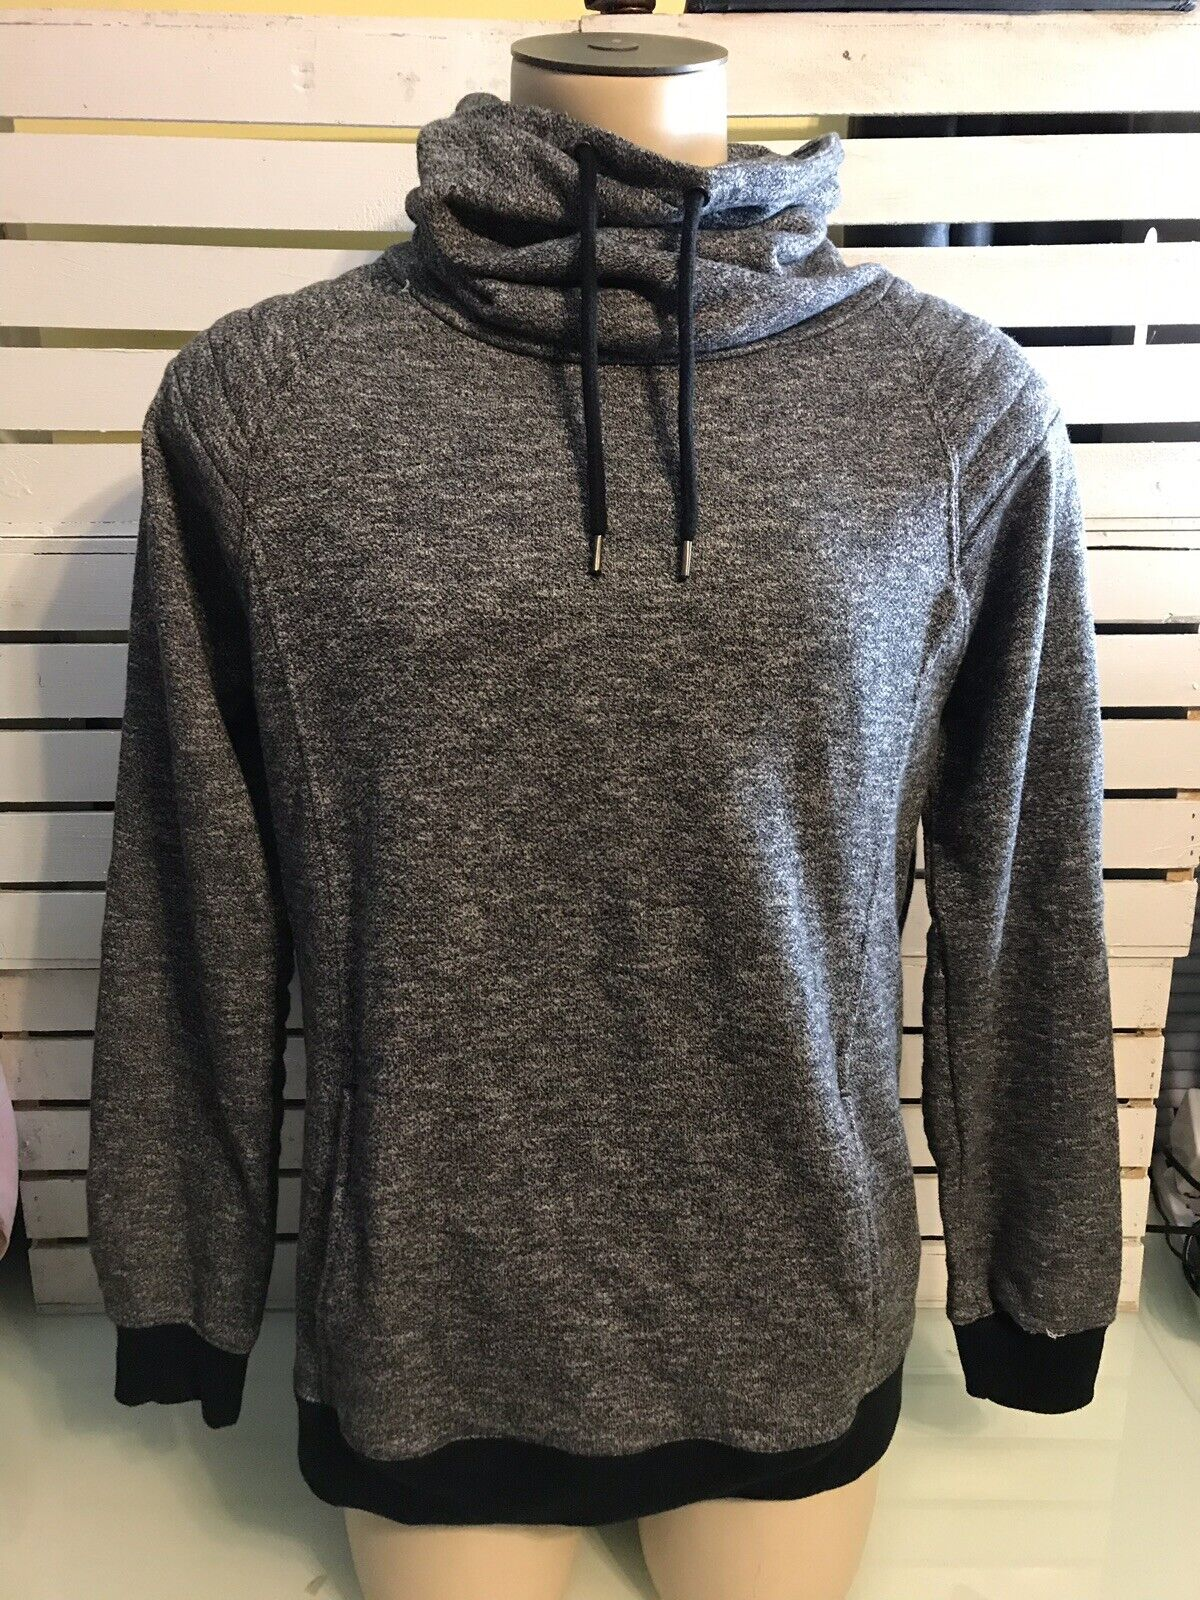 21 Men (by Forever 21) Dark Grey Soft Knit Cardigan Sweater Size XLarge